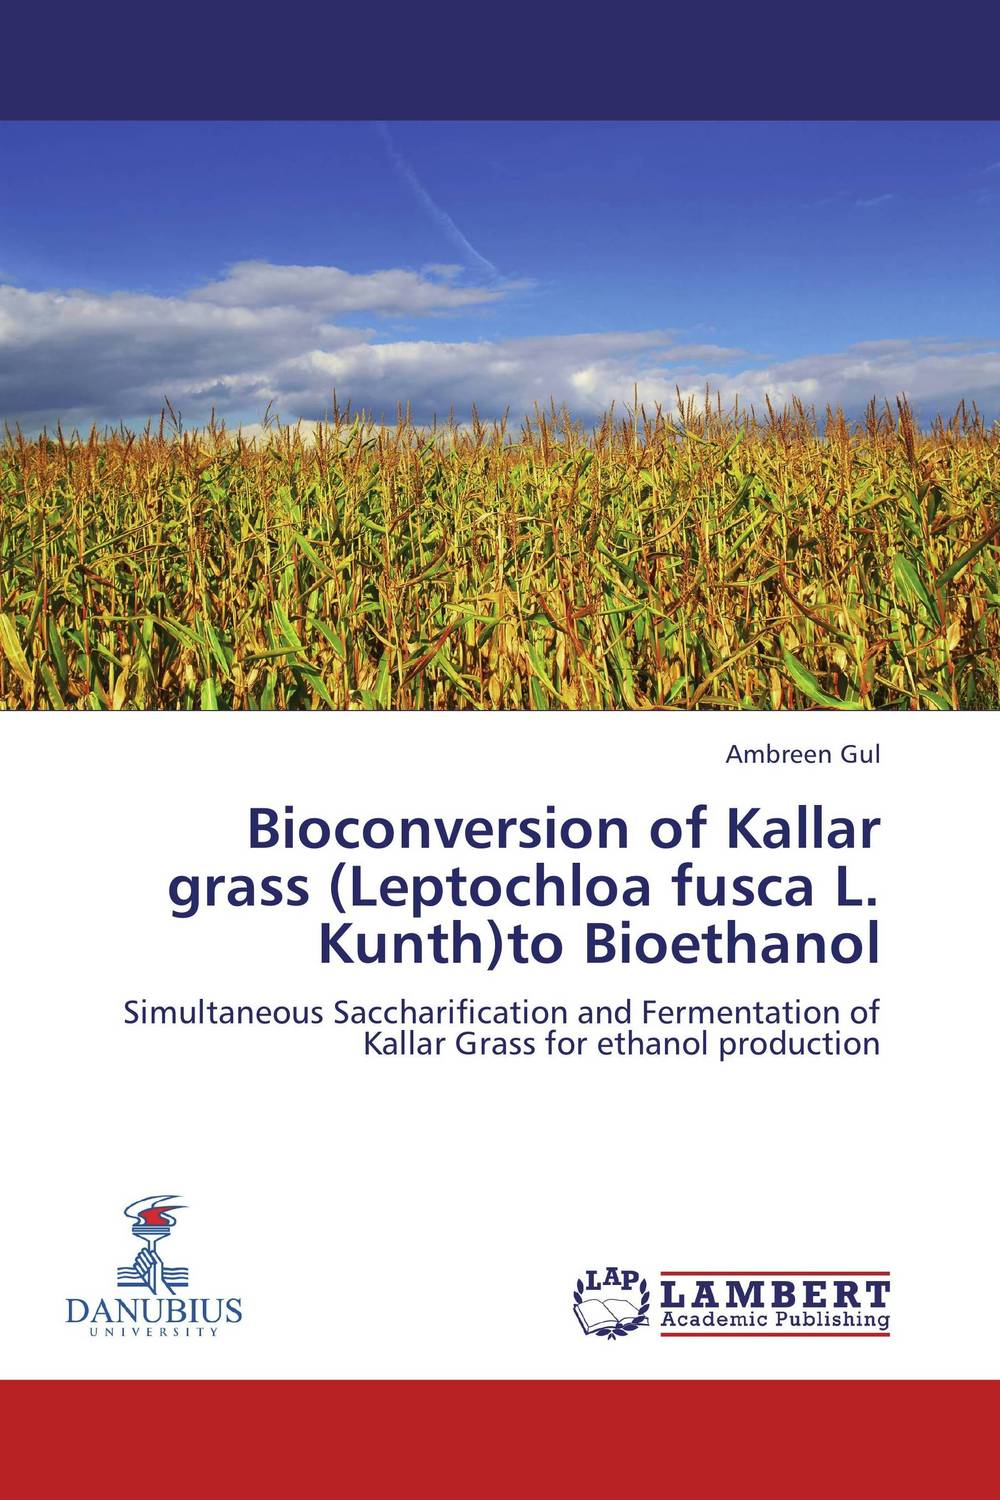 Bioconversion of Kallar grass (Leptochloa fusca L. Kunth)to Bioethanol